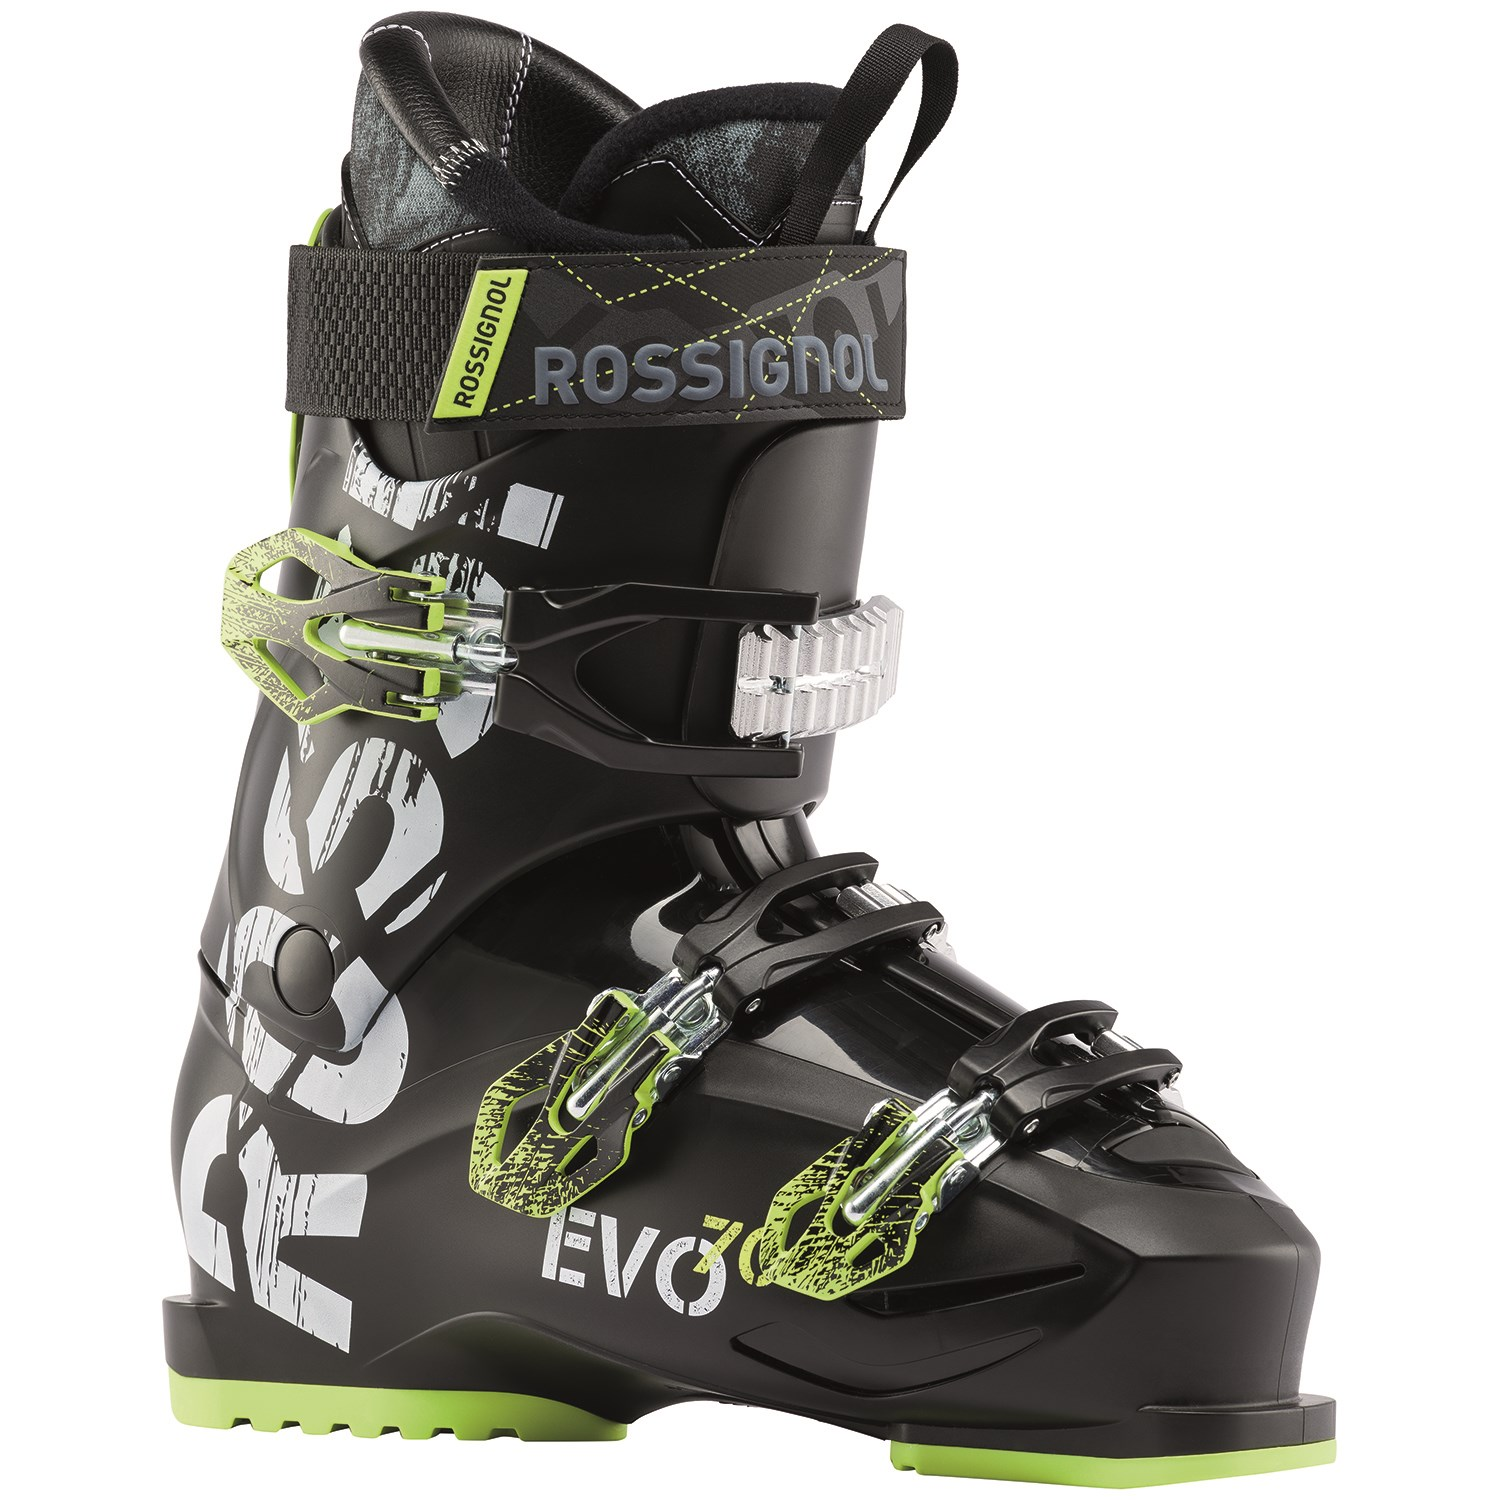 Rossignol Evo 70 Ski Boots Mens Outdoor Recreation Winter Sports